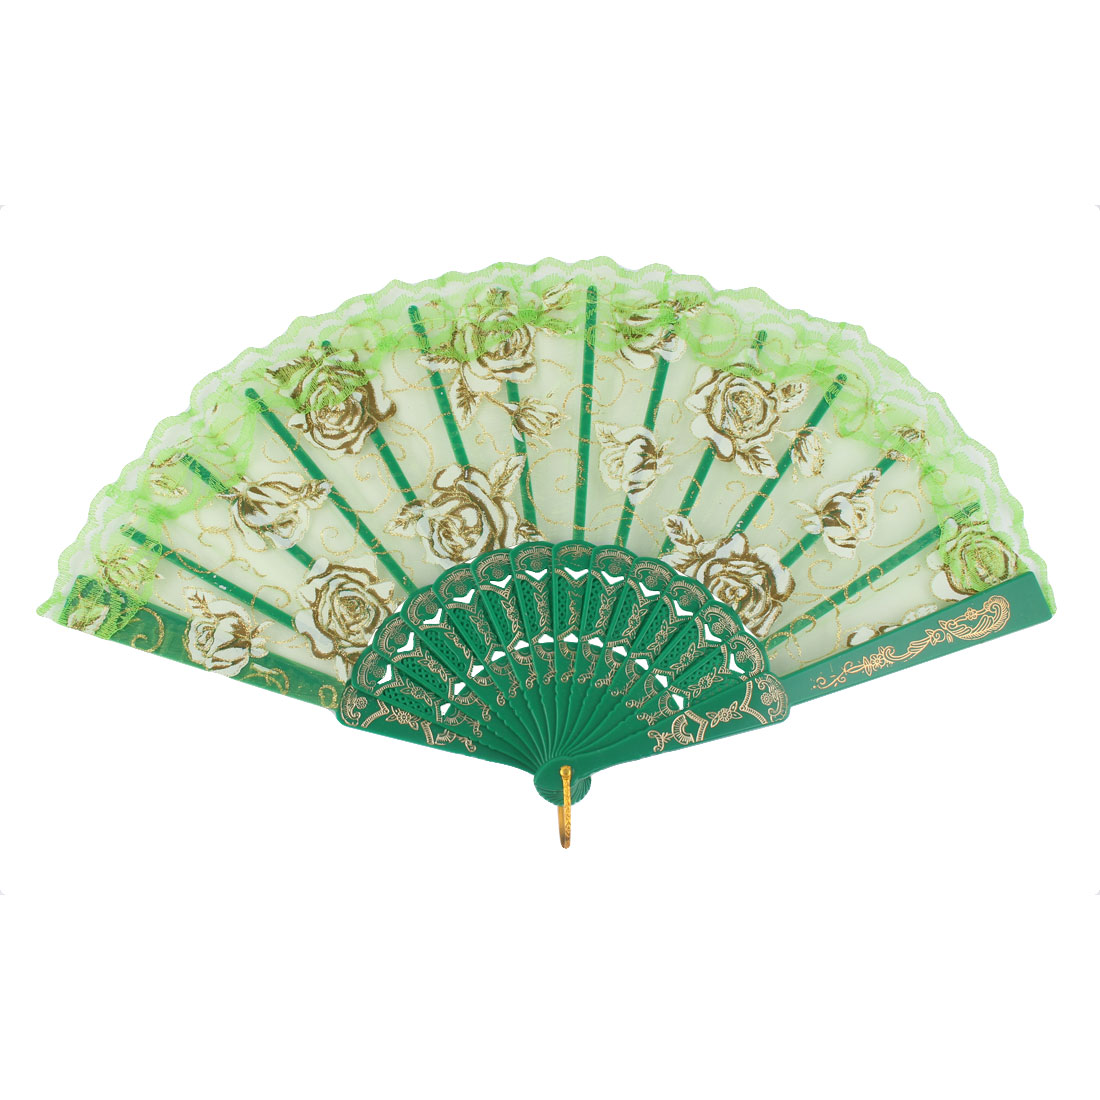 Dancing Wedding Chinese Style Flower Pattern Folding Fan Green Gold Tone